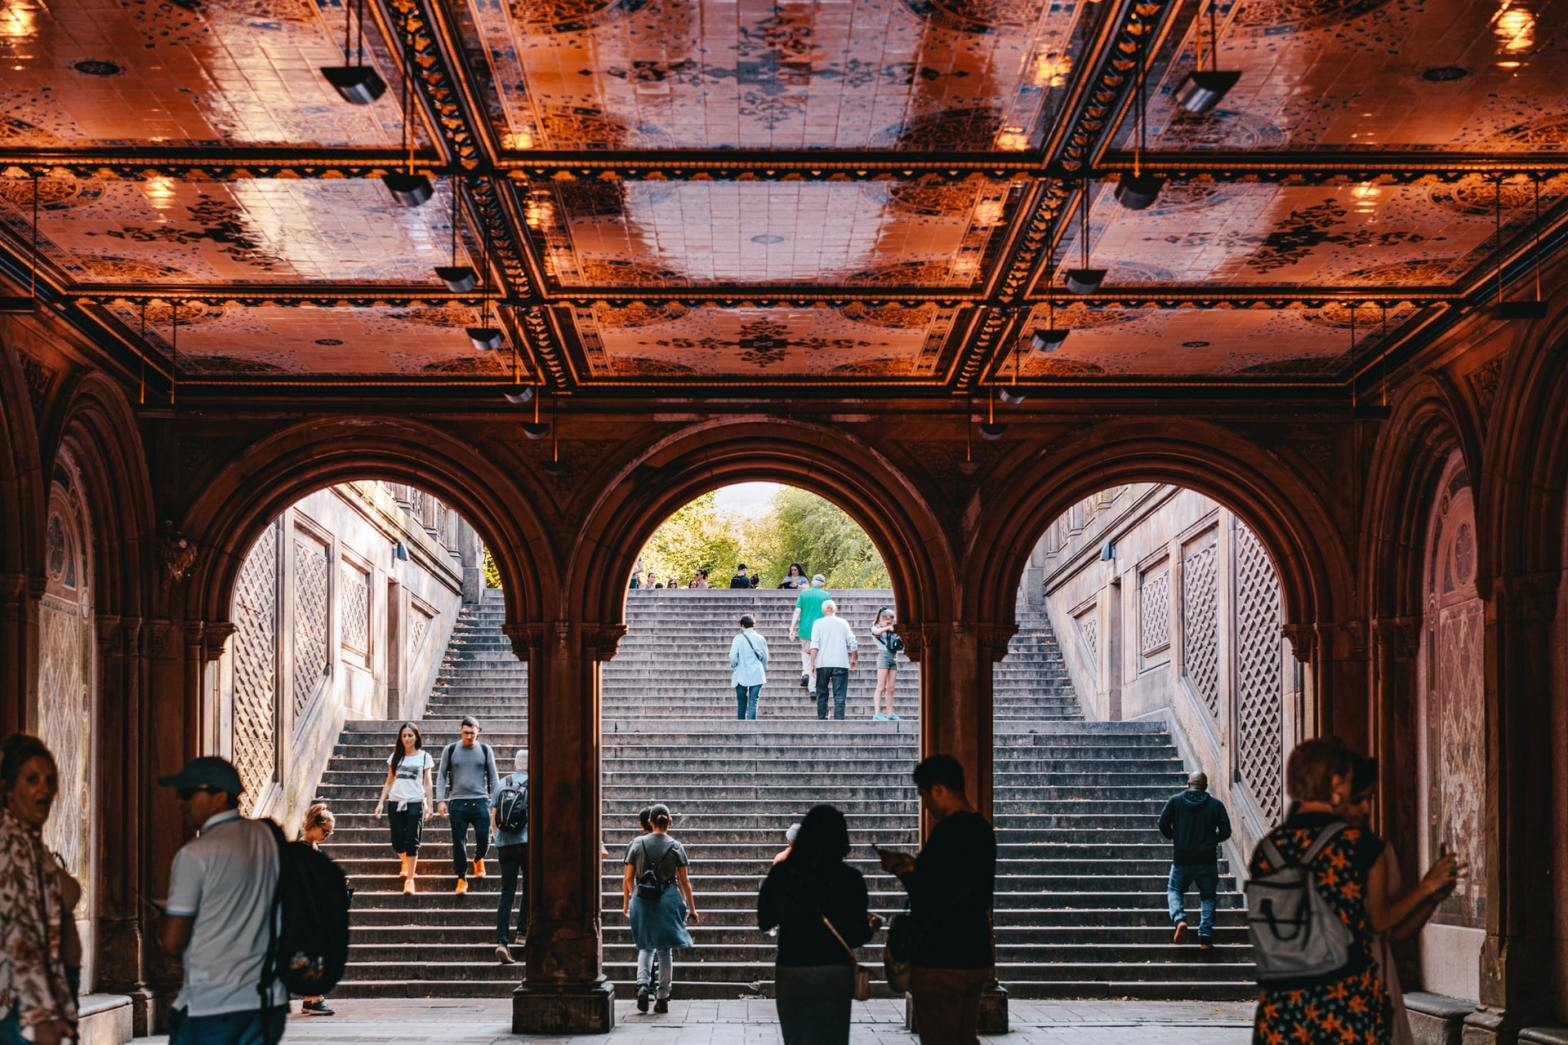 Tourists walking around in Bethesda Terrace in NYC